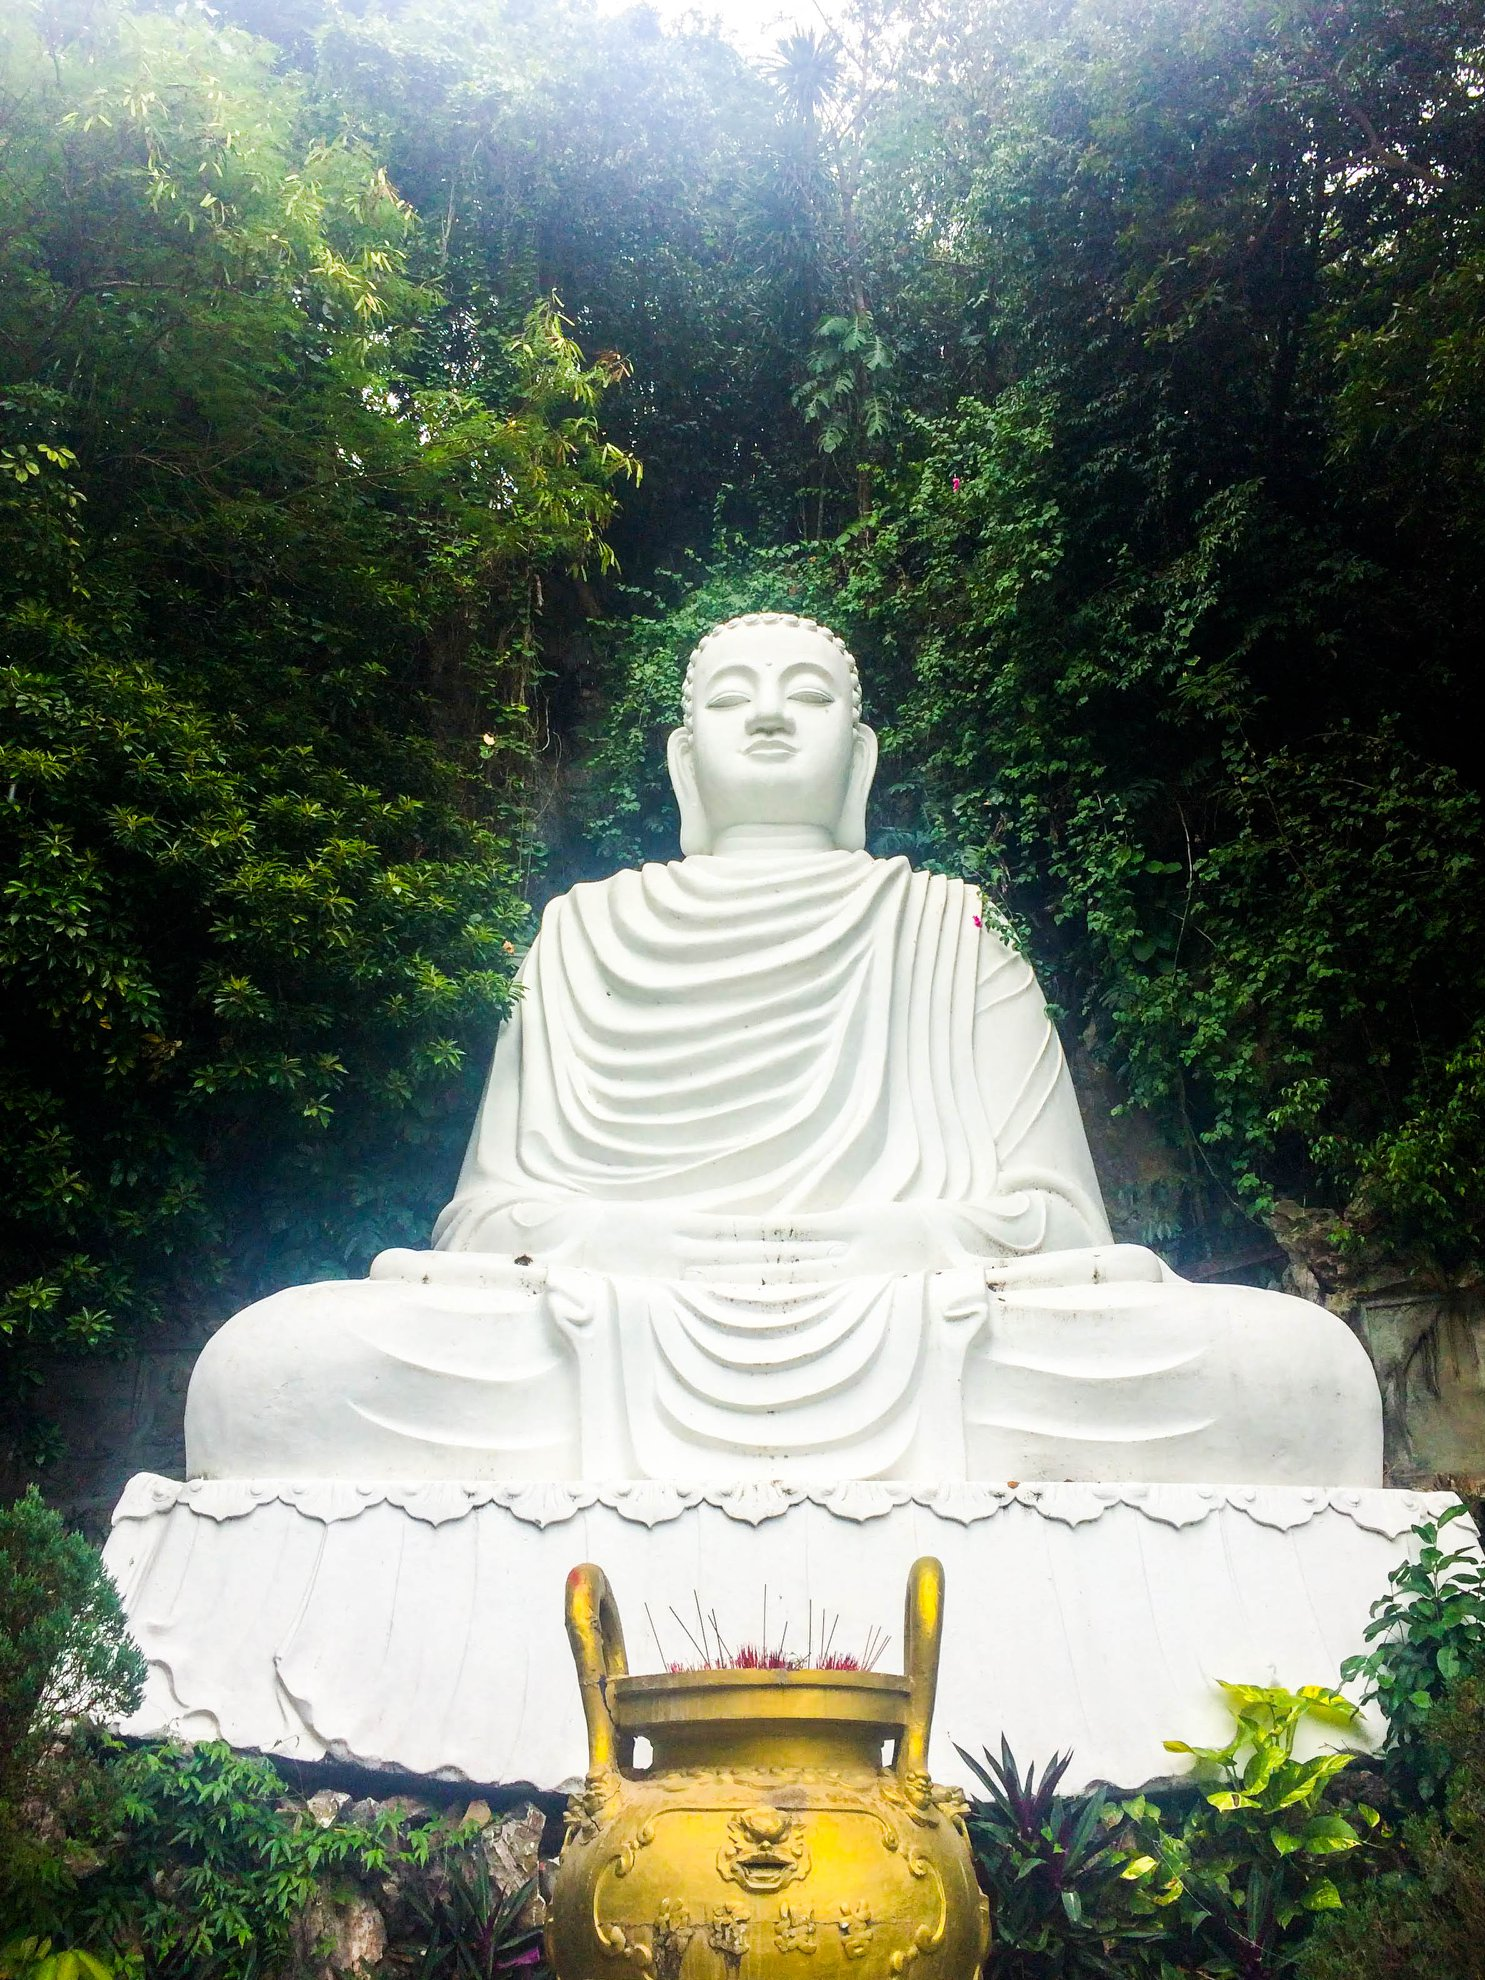 "This one is not the centerpiece of a sanctuary, and had a sign explicitly allowing photographs. You can get your amazing Buddha shot and still be respectful. Shout out to Vietnamese humidity for giving him that ""ethereal glow""."